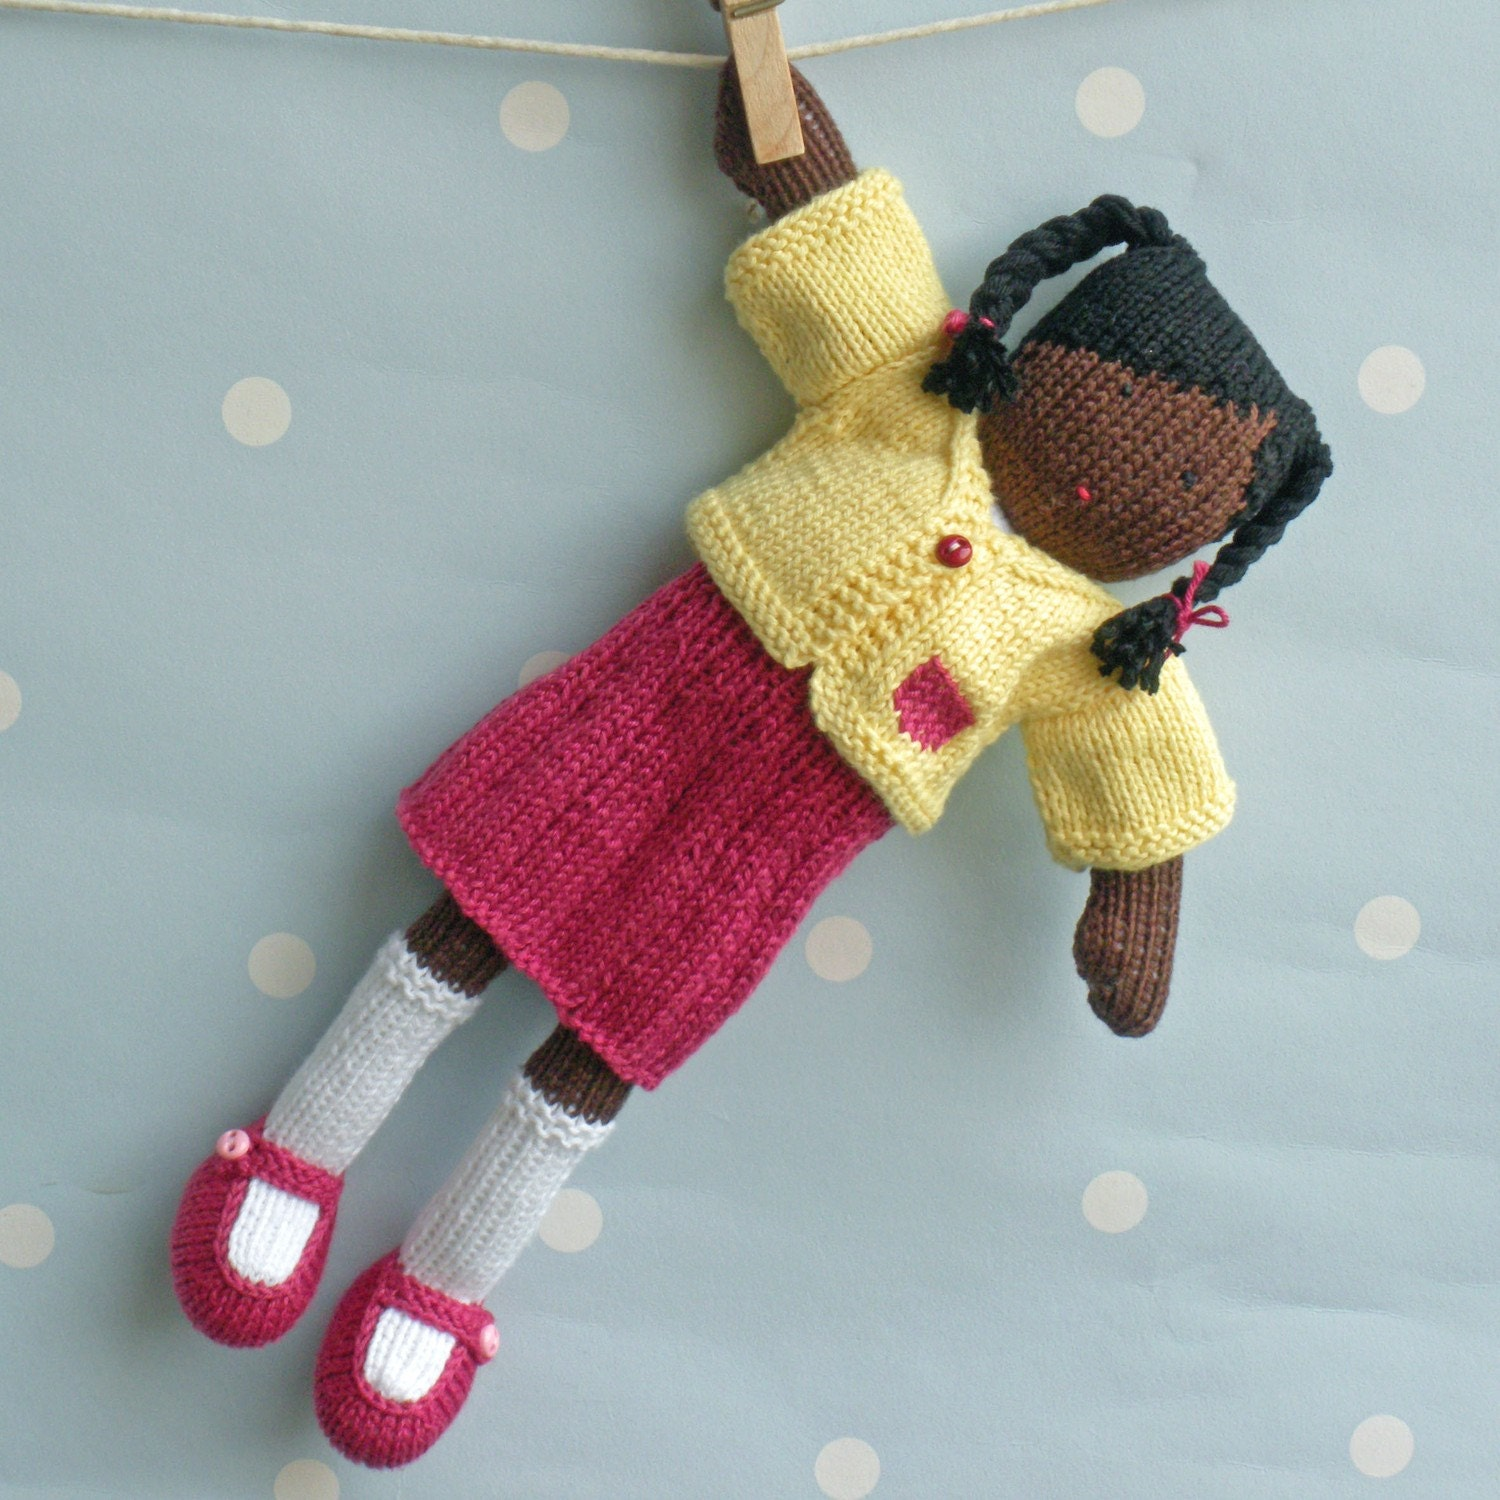 Kora - hand knitted doll, traditionally inspired and unique - 12 inches tall